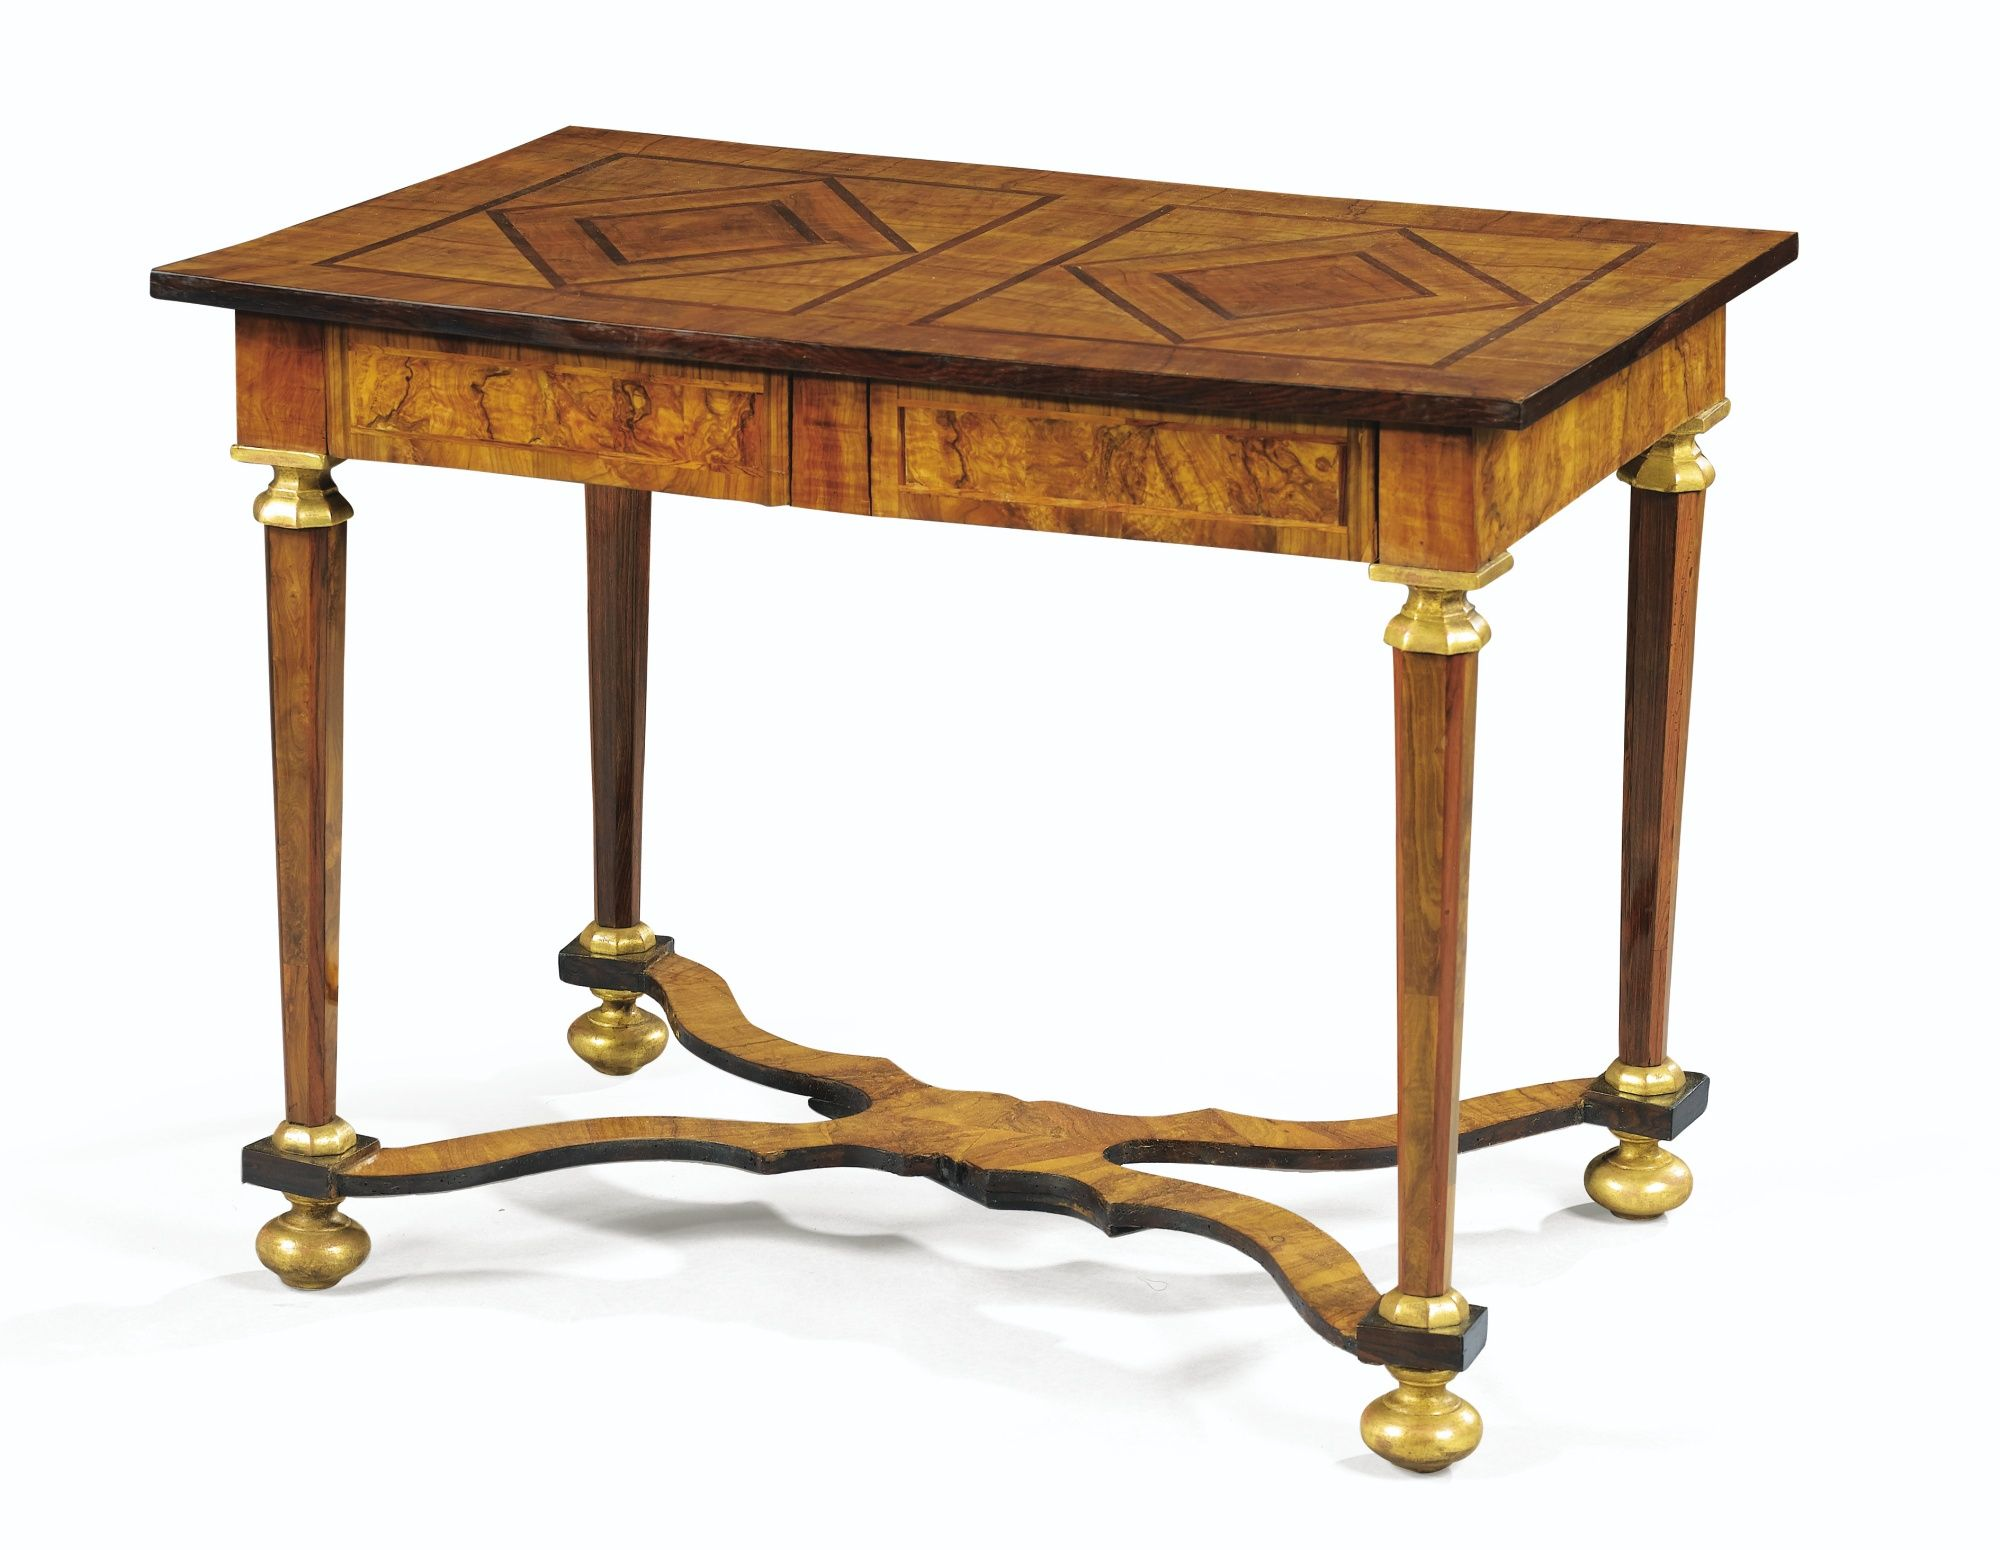 date unspecified A PARCELGILT OLIVEWOOD TABLE, LOUIS XIV